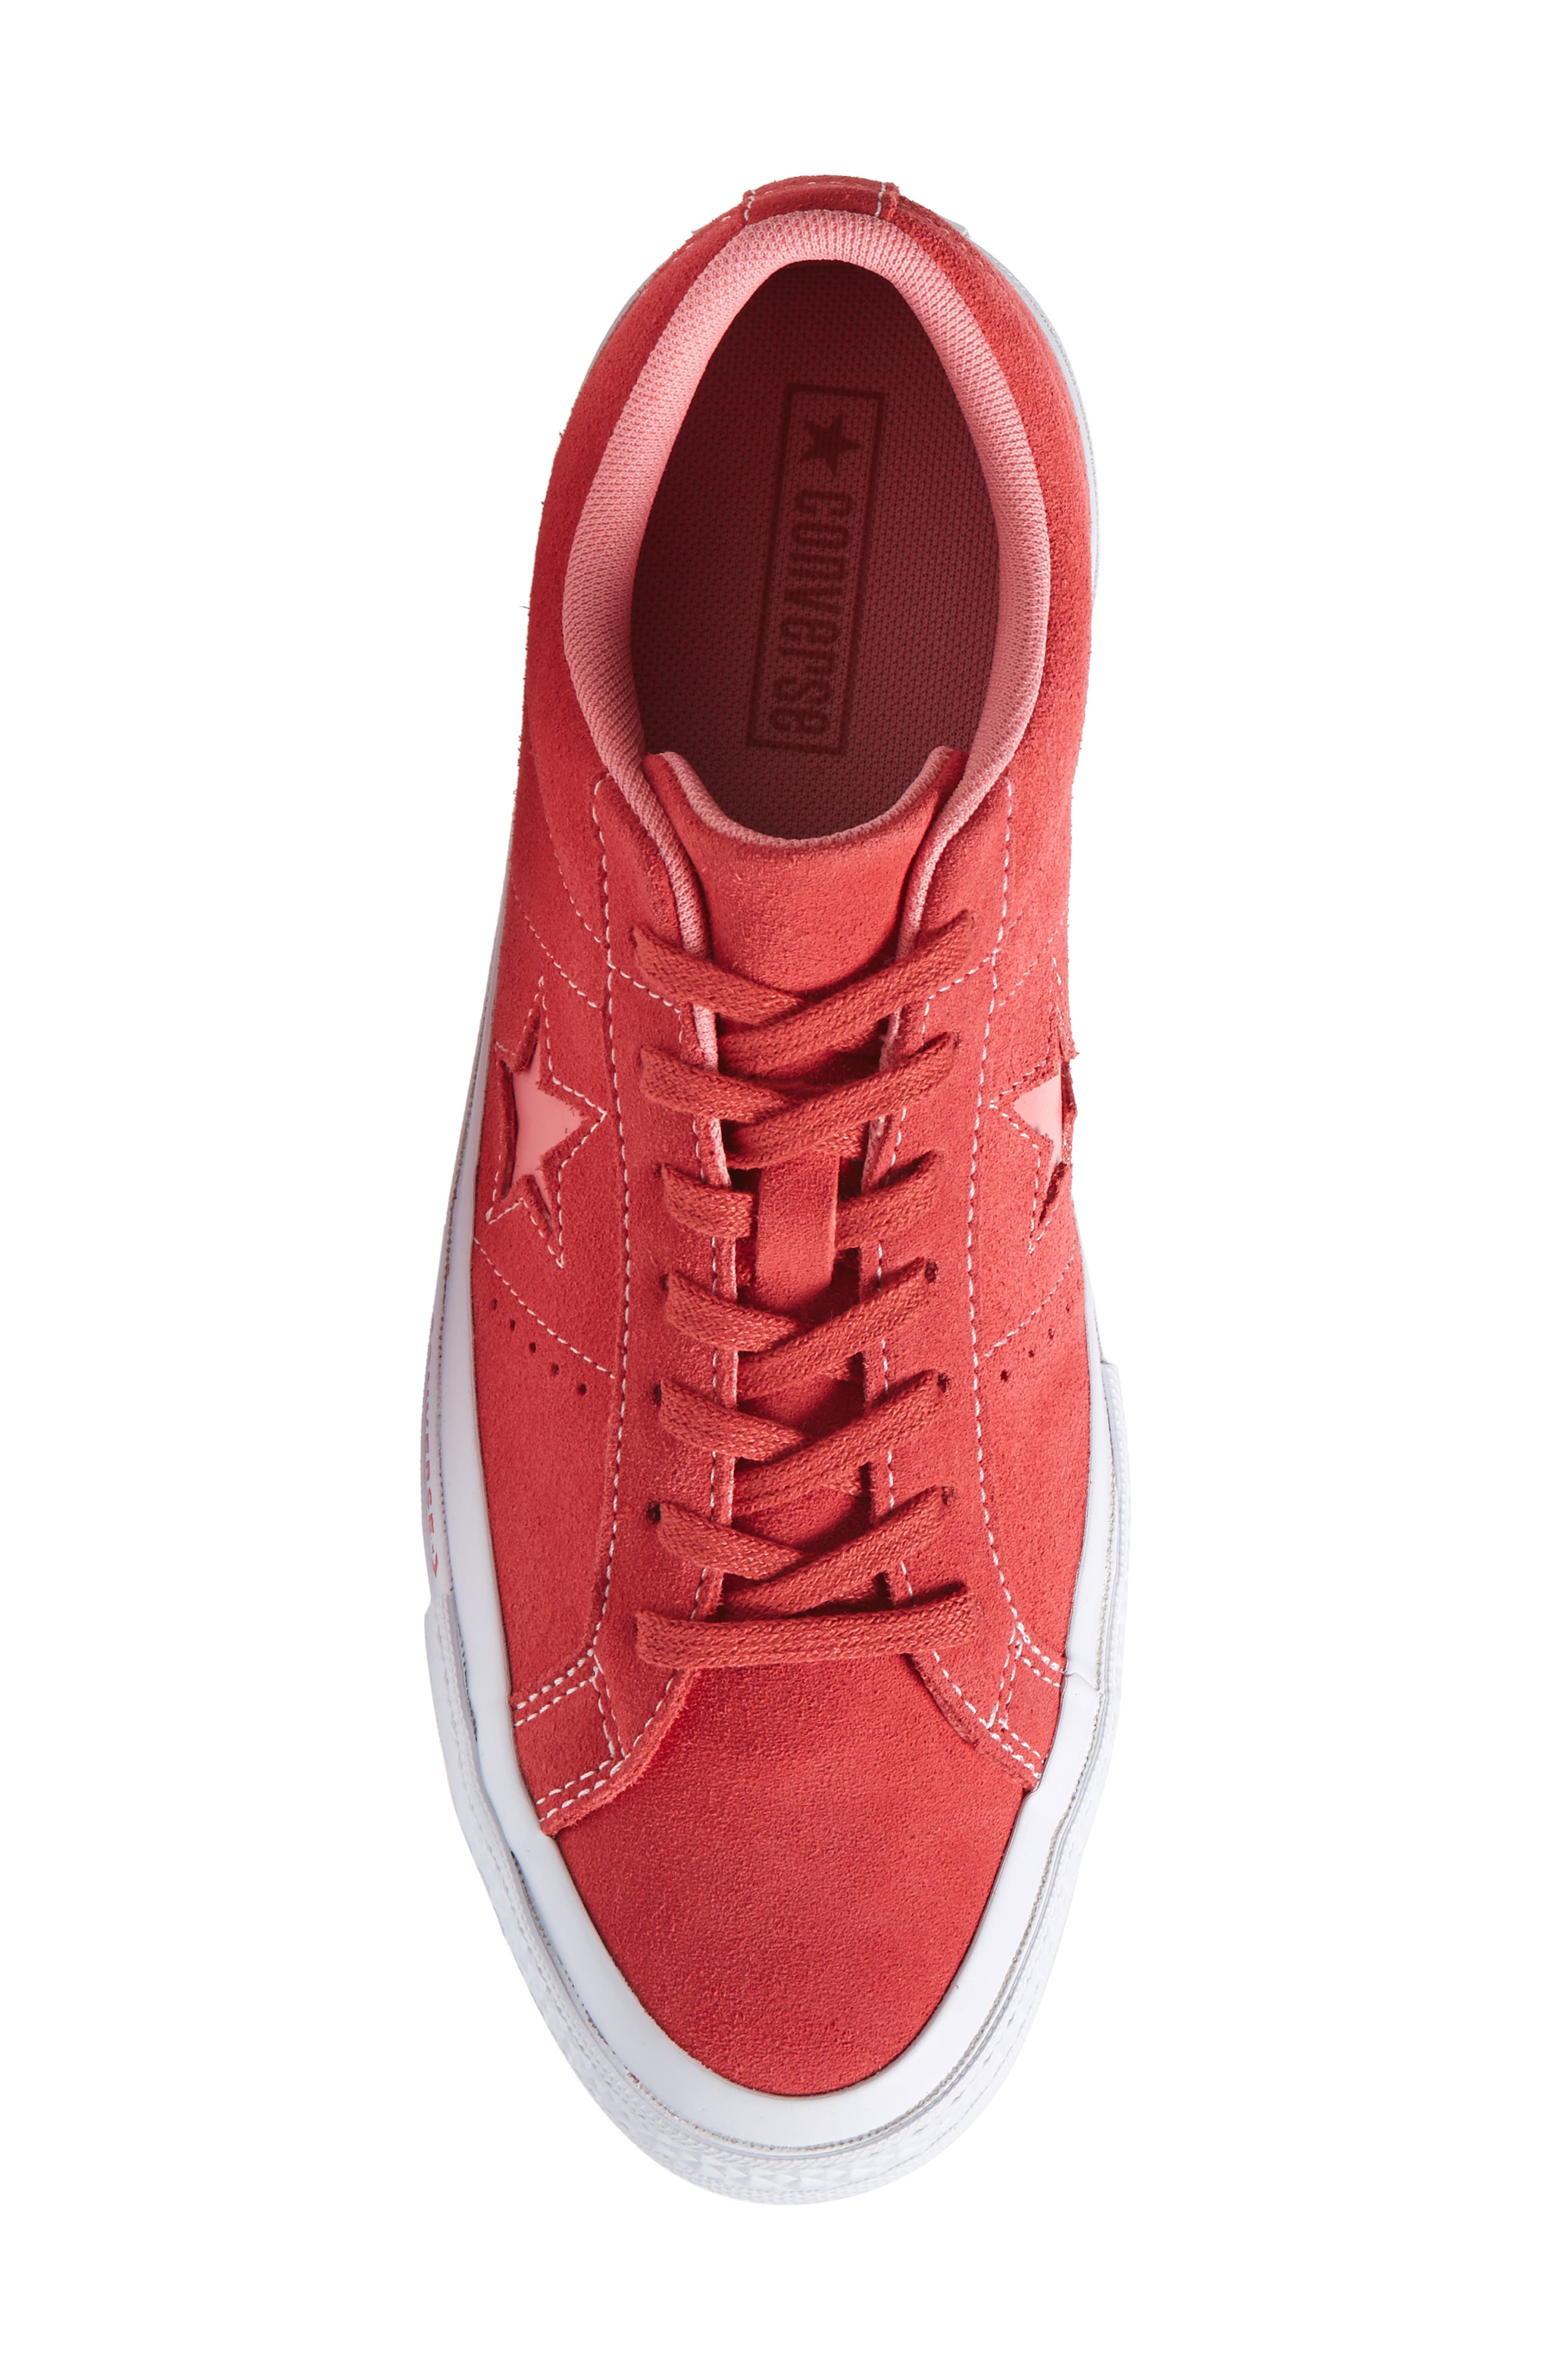 Chuck Taylor<sup>®</sup> One Star Pinstripe Sneaker,                             Alternate thumbnail 5, color,                             Paradise Pink Suede